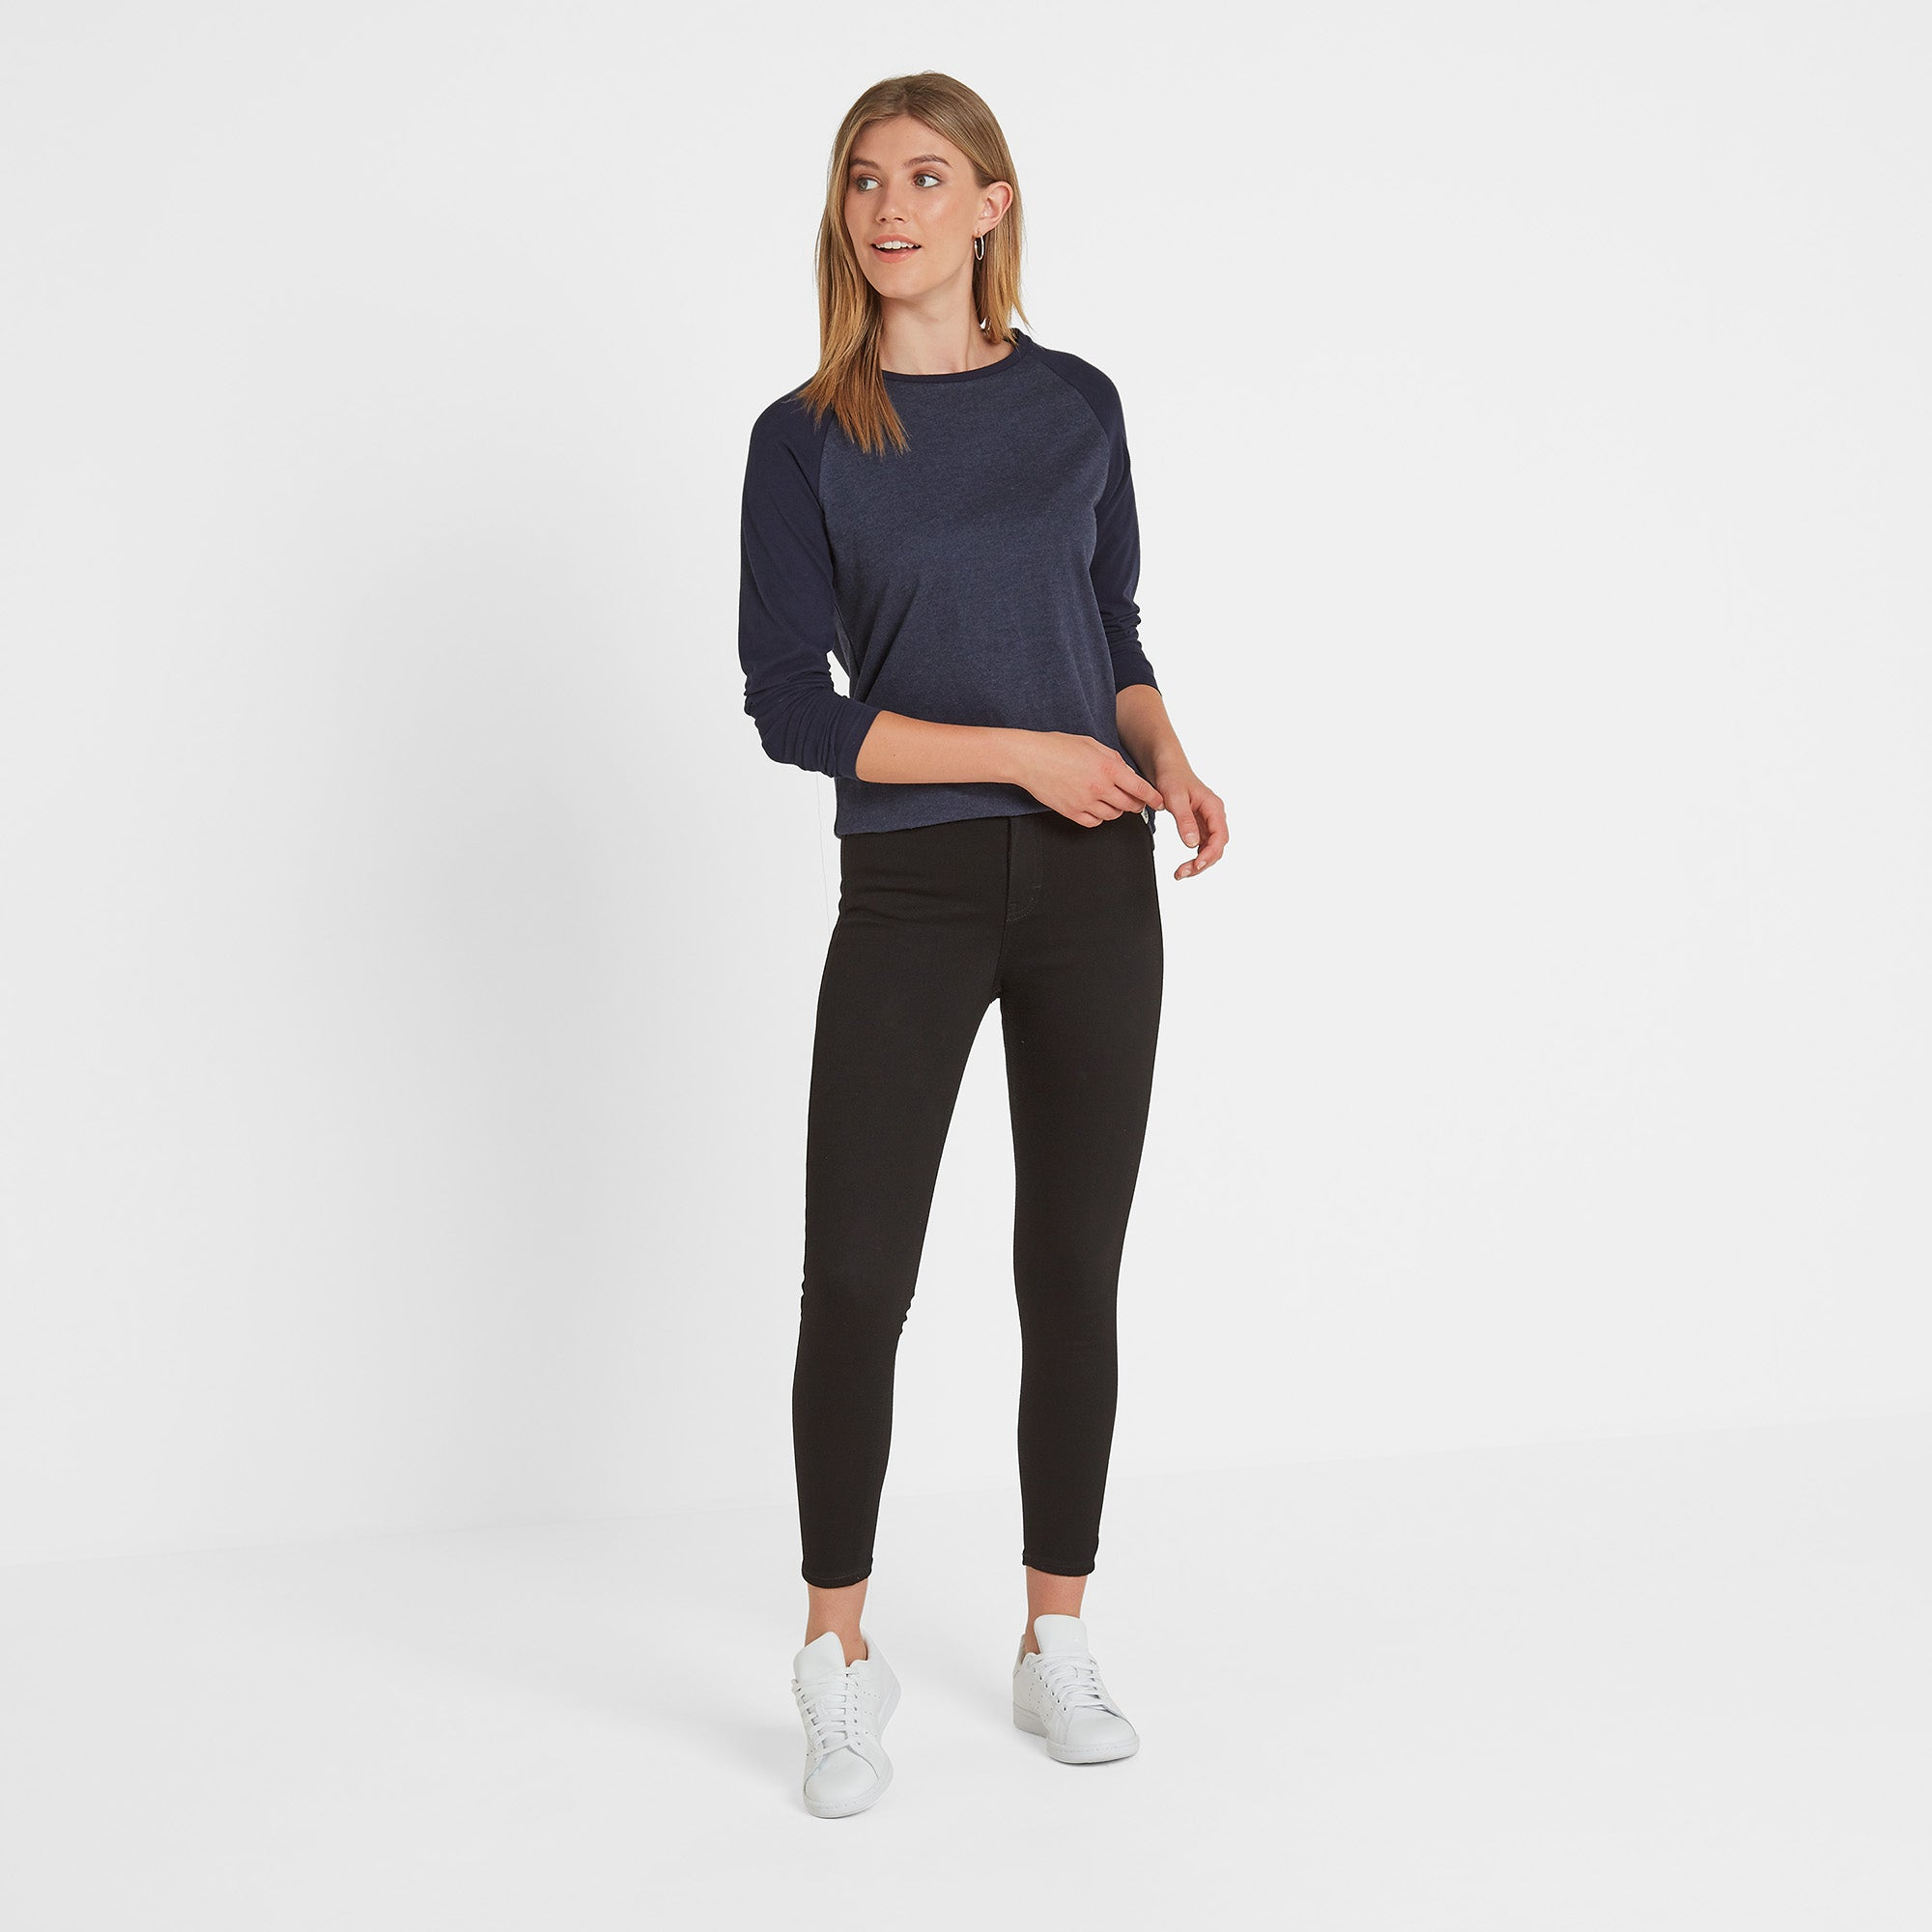 Kilwick Womens Long Sleeve Raglan T-Shirt - Navy/Blue